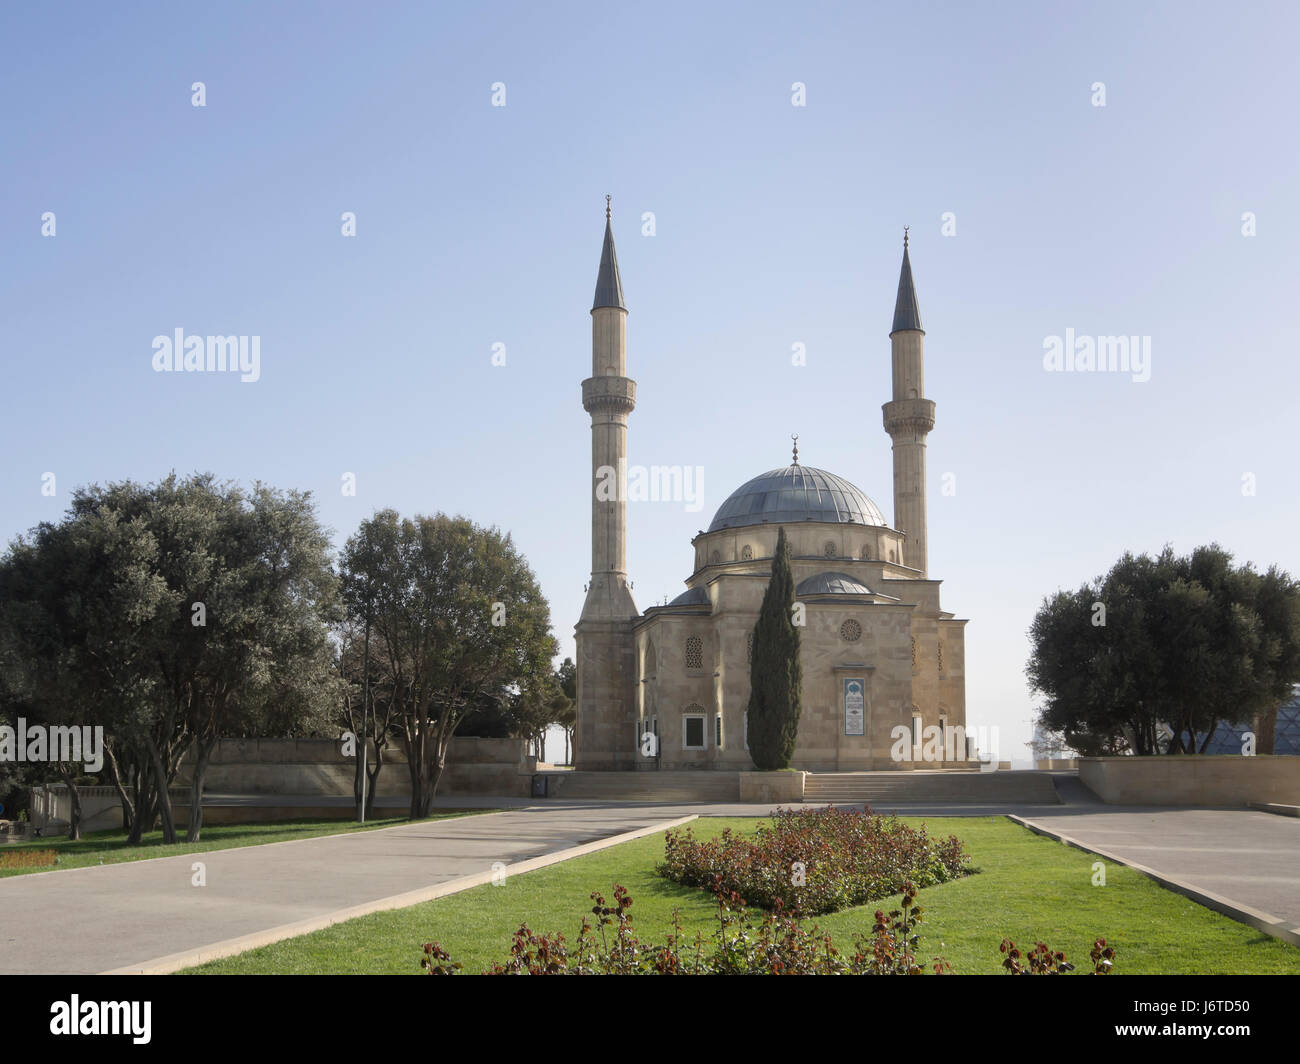 Mosque of the Martyrs or Turkish Mosque, built in 1990s in Ottoman style near  Martyrs' Lane in the capital of Azerbaijan Stock Photo